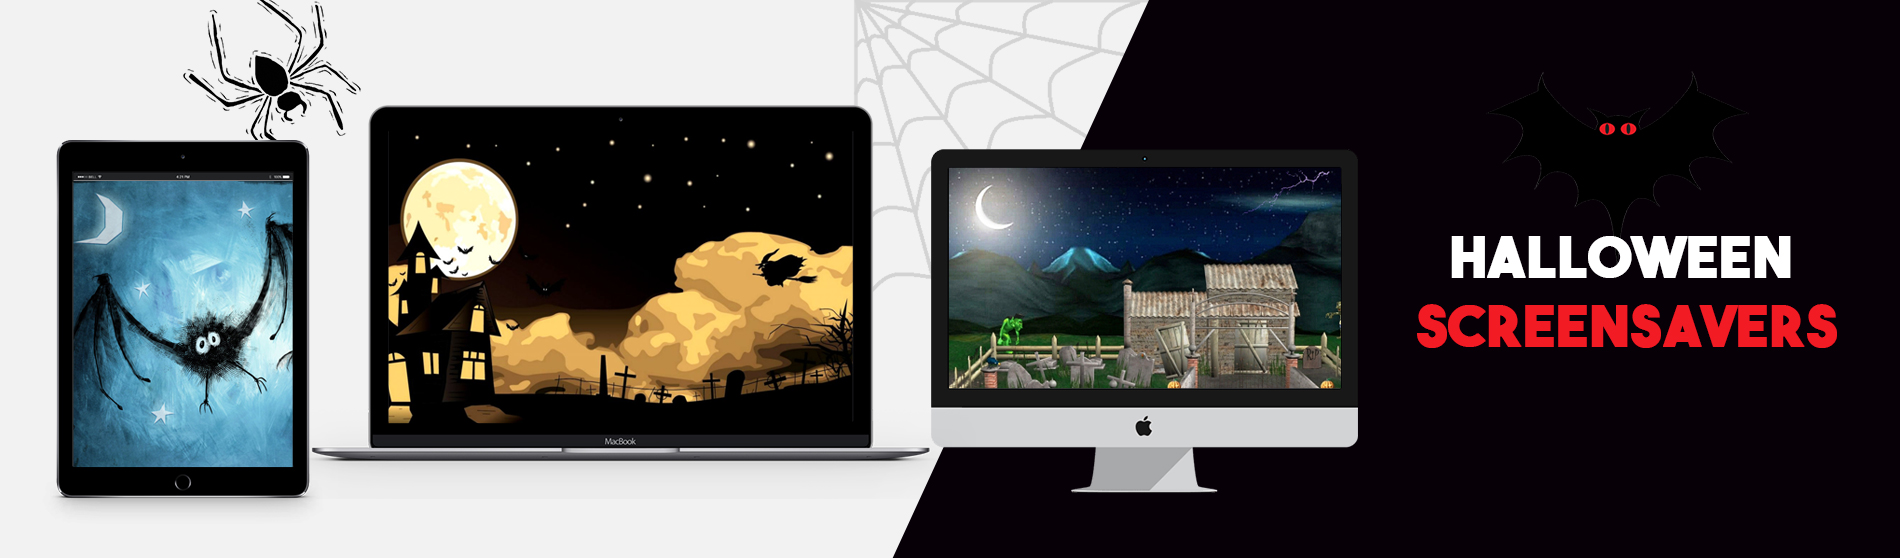 Halloween-Screensavers